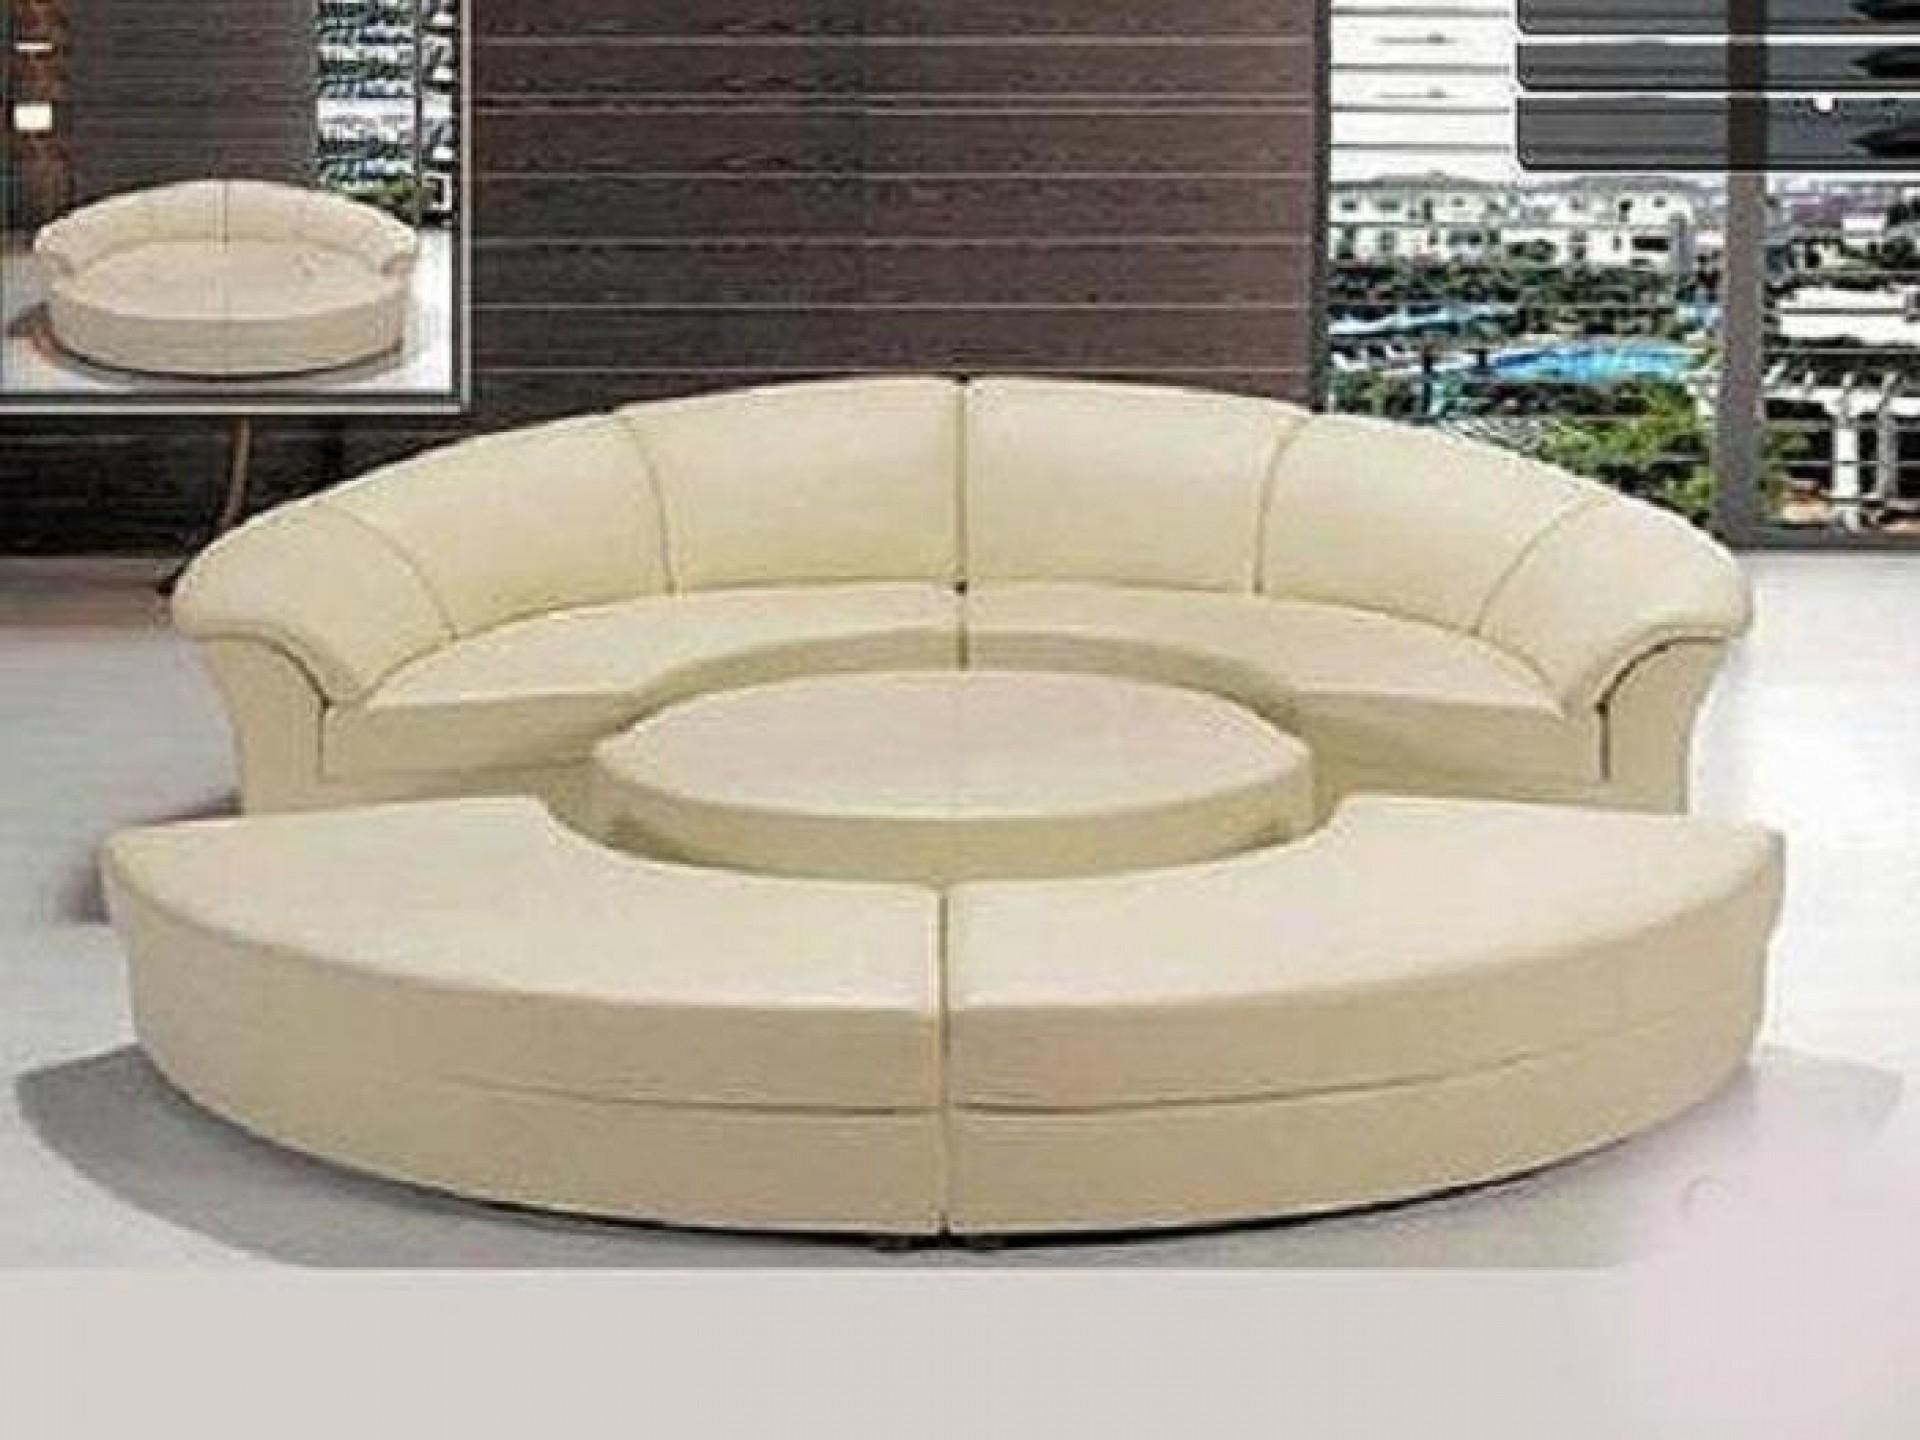 Sofa Round Sectional Bed | Tamingthesat Within Round Sofas (Image 14 of 20)